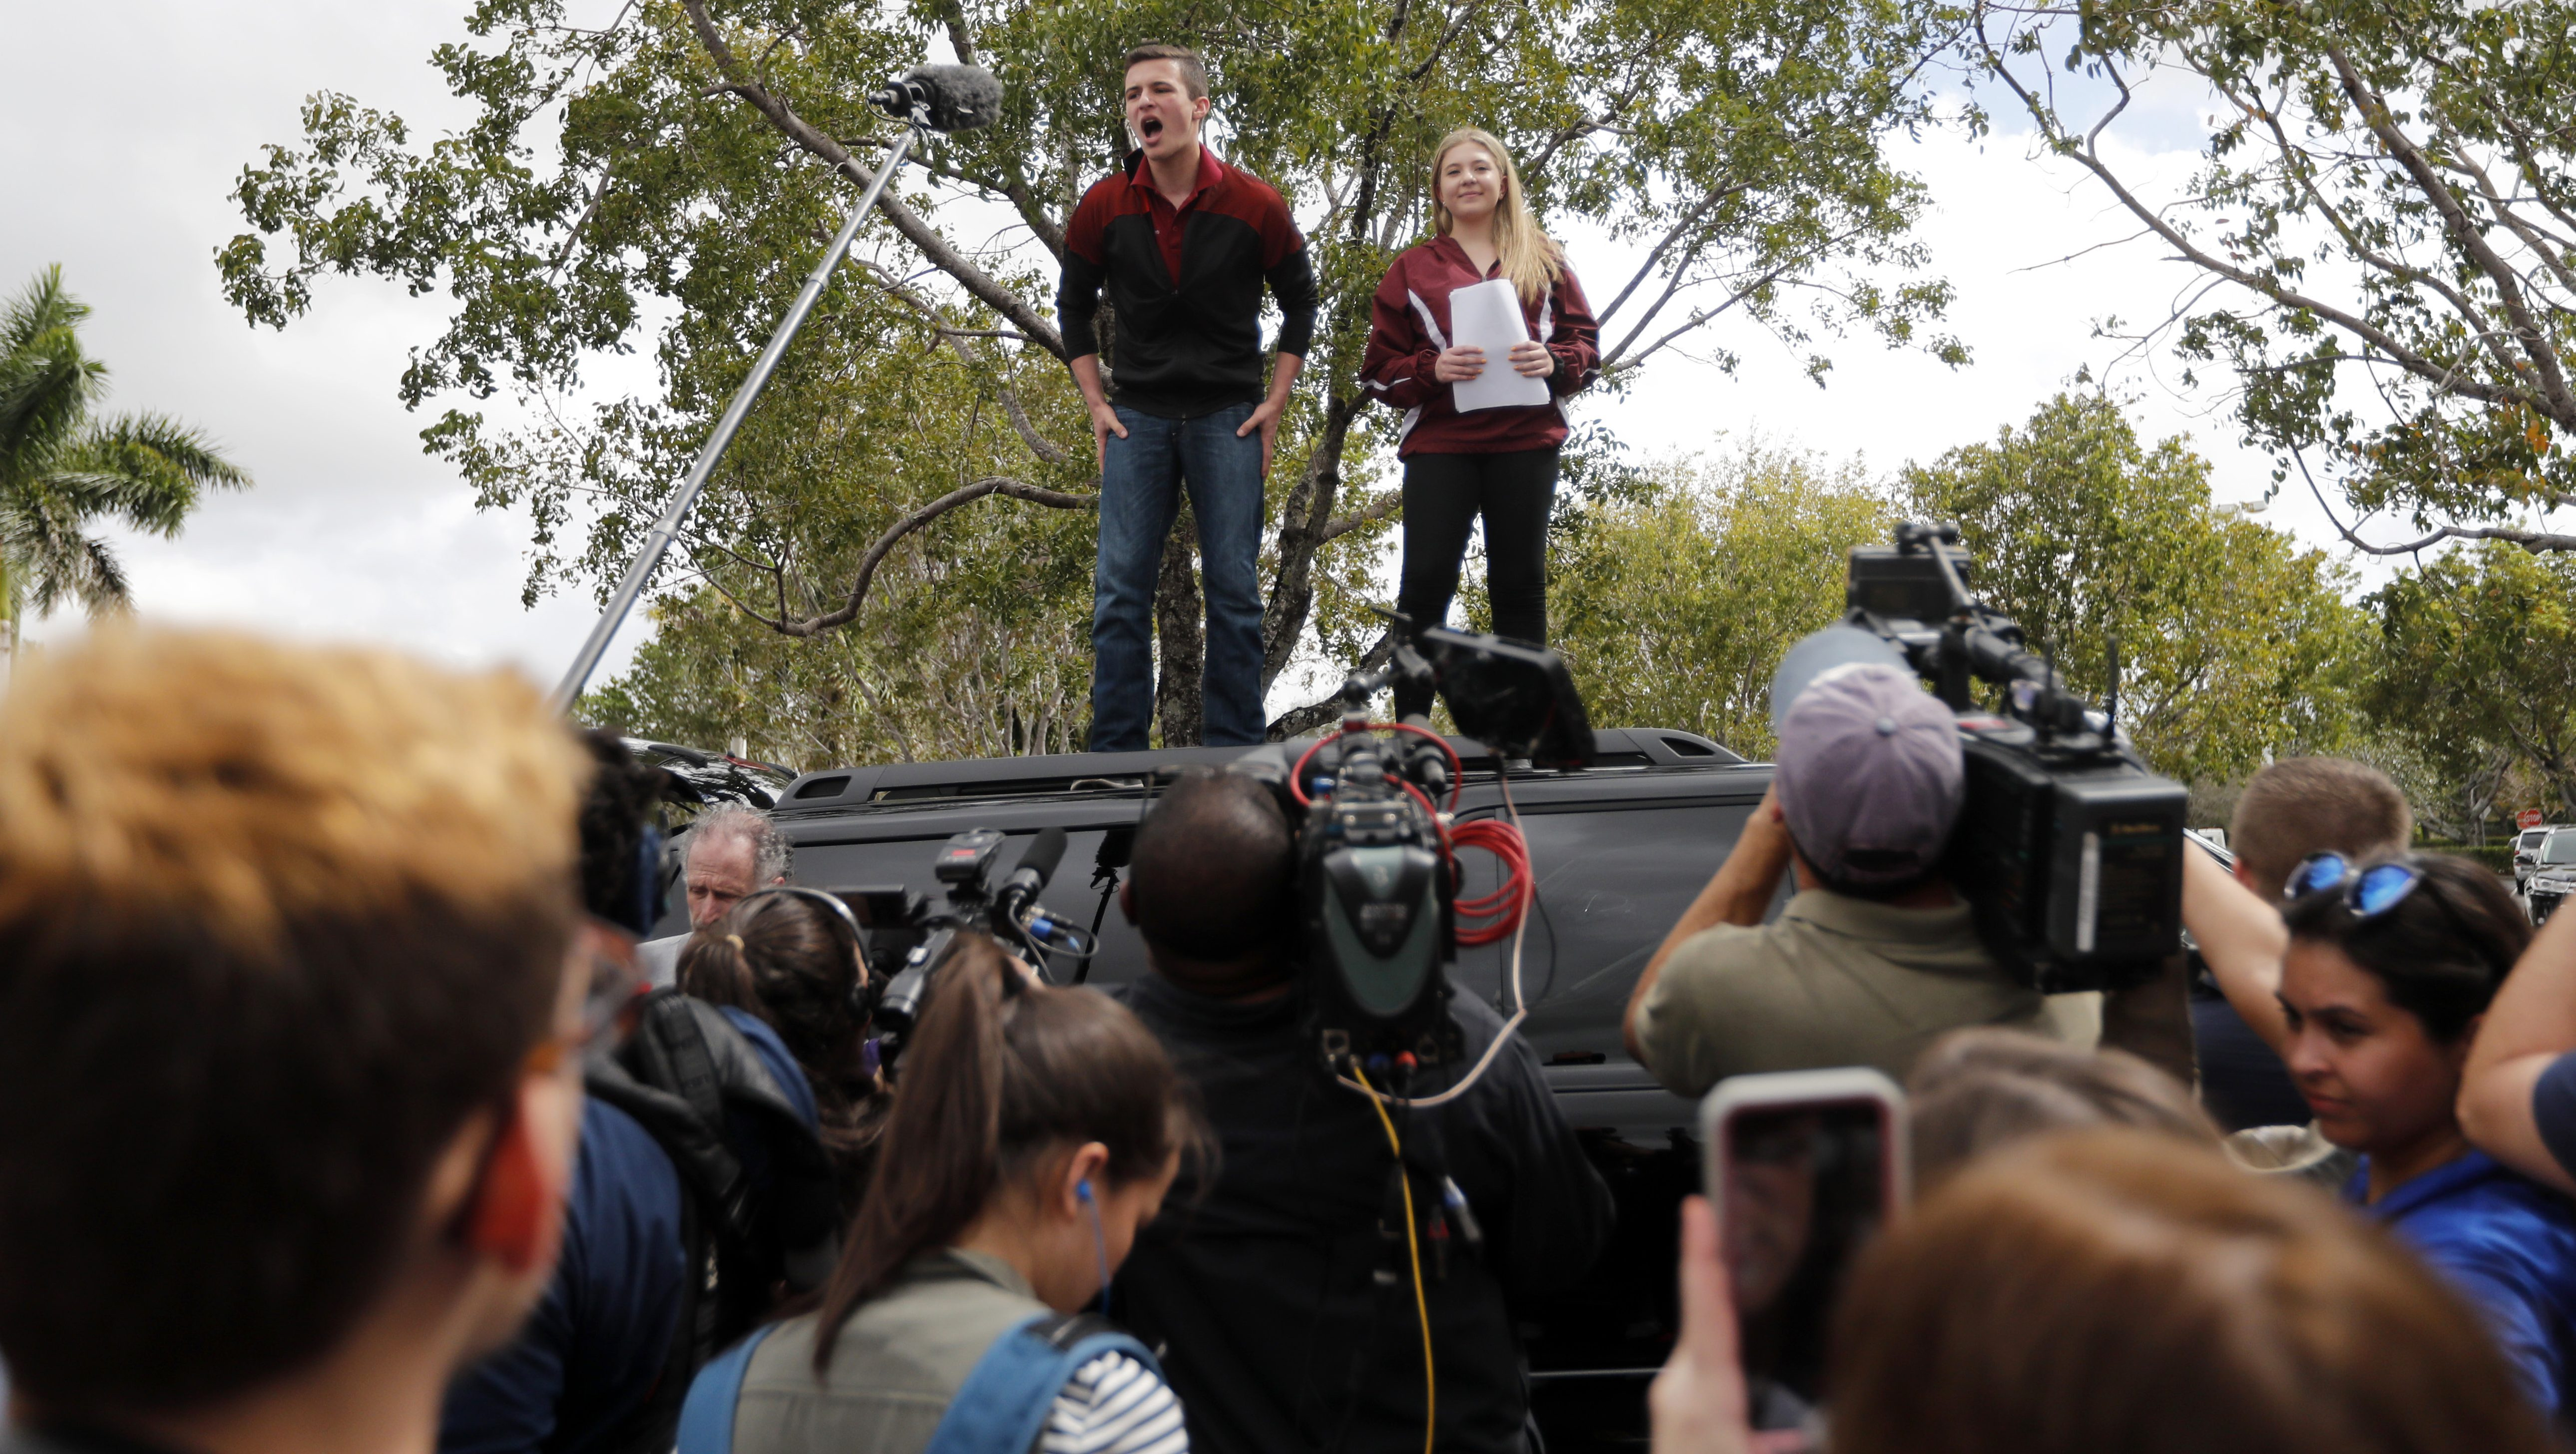 Organizers Cameron Kasky, left, and Jackie Corin, student survivors from Marjory Stoneman Douglas High School address fellow students before boarding buses in Parkland, Fla., Tuesday, Feb. 20, 2018, to rally outside the state capitol.   The students plan to hold a rally Wednesday in hopes that it will put pressure on the state's Republican-controlled Legislature to consider a sweeping package of gun-control laws, something some GOP lawmakers said Monday they would consider. (AP Photo/Gerald Herbert)